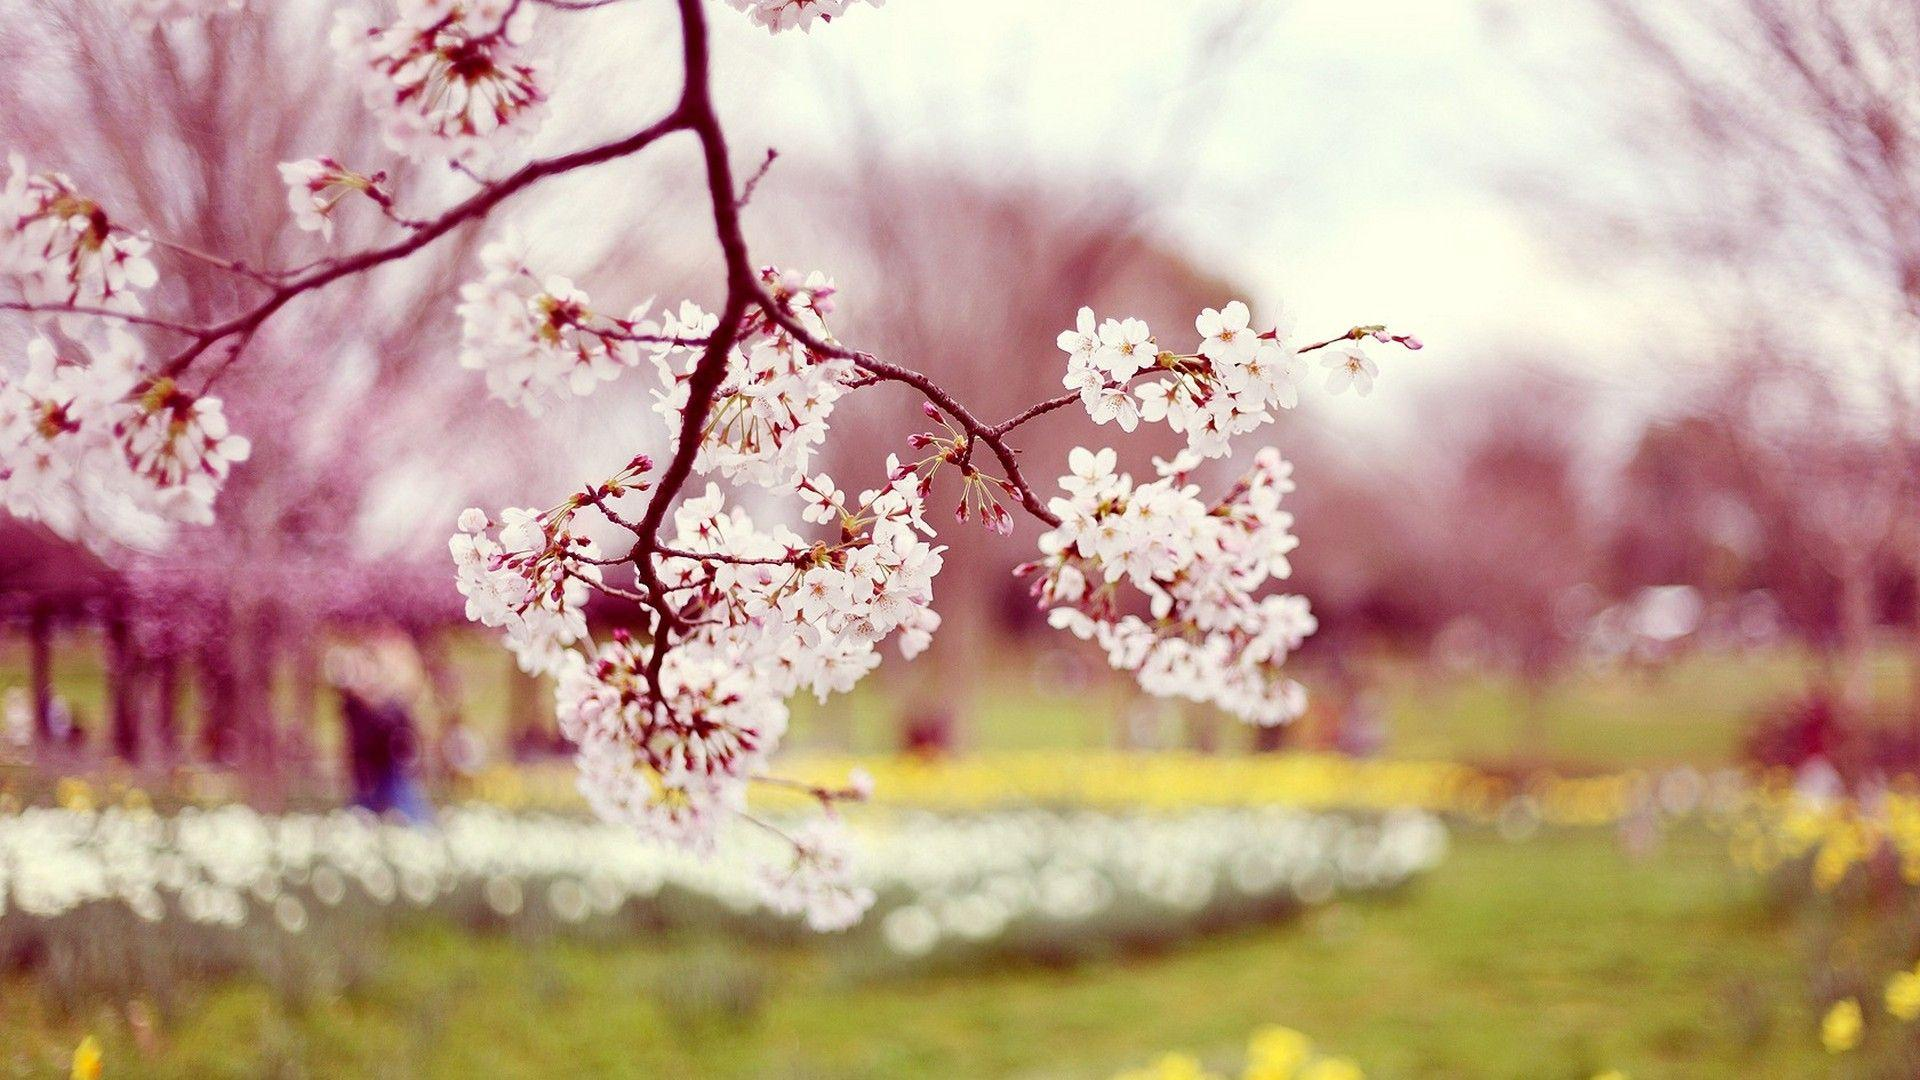 Desktop Wallpaper Beautiful Spring - 2018 Cute Screensavers